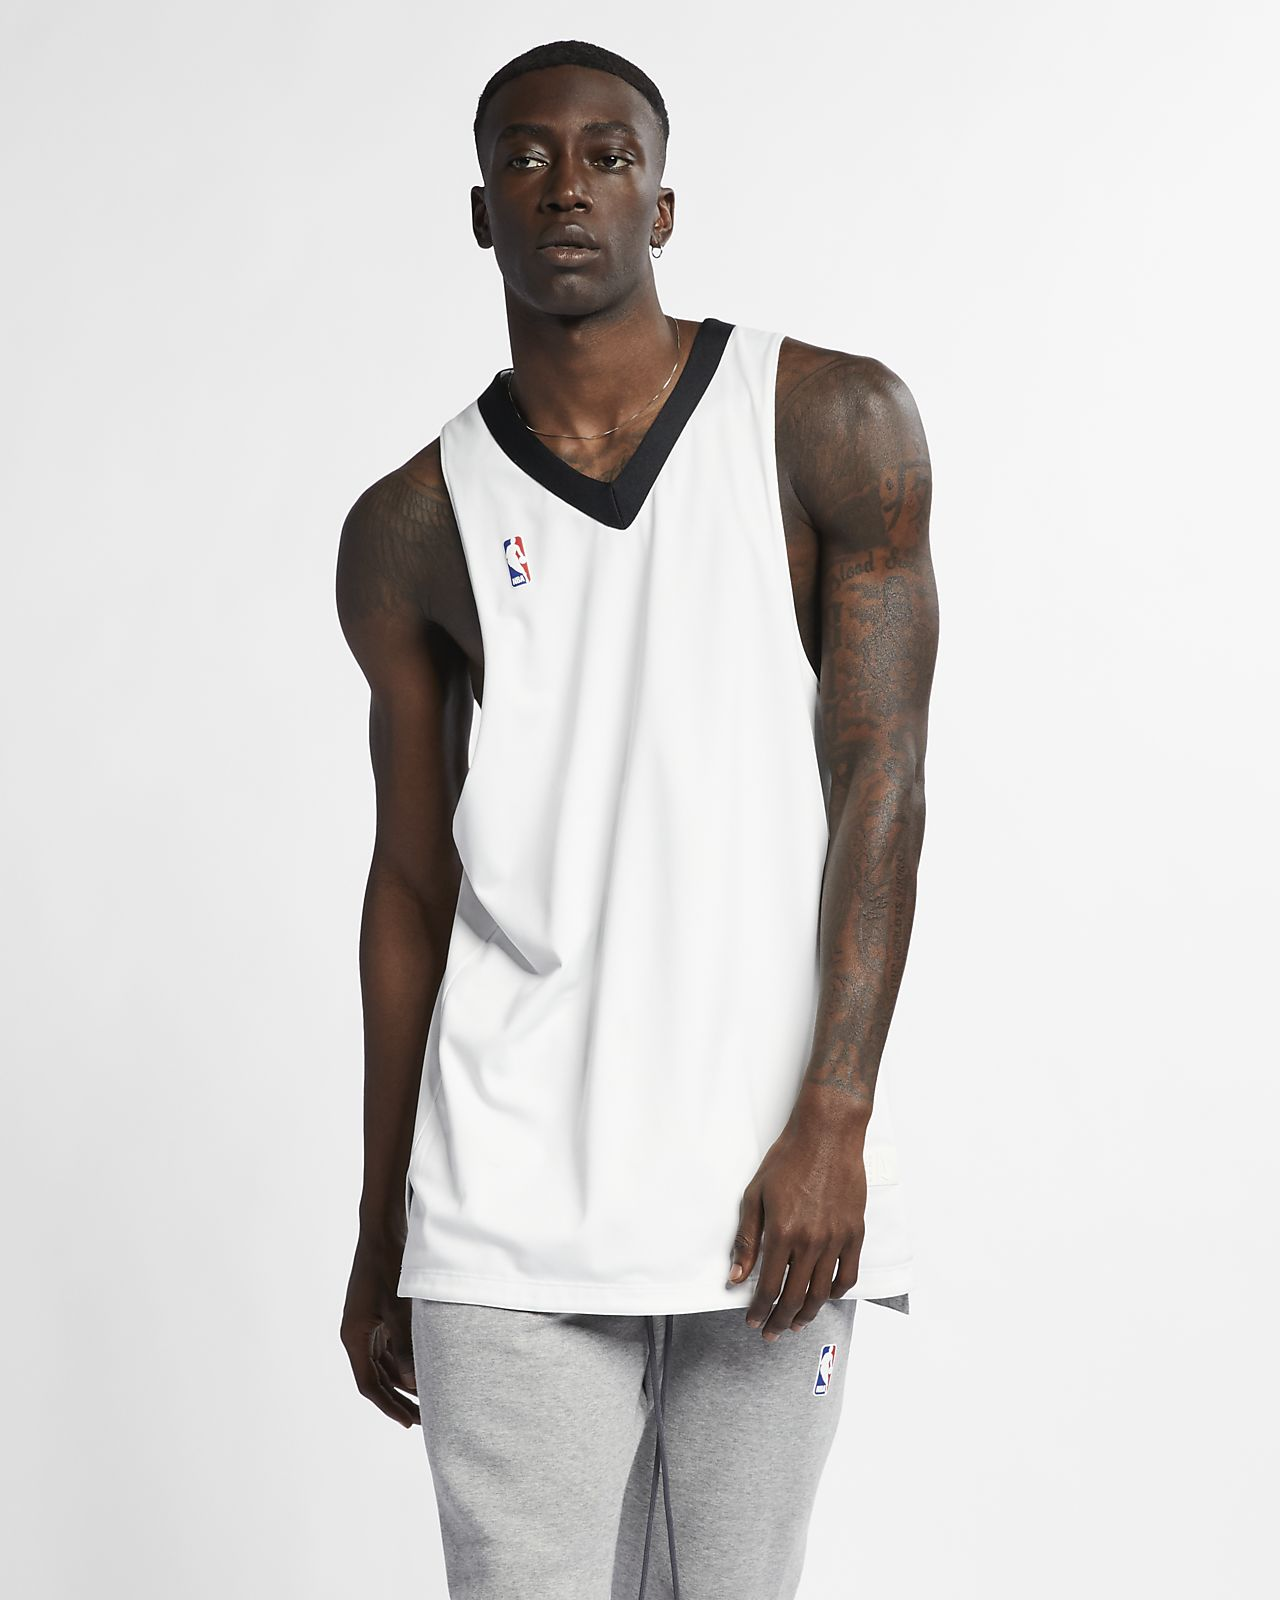 Nike x Fear of God Men's Reversible Jersey